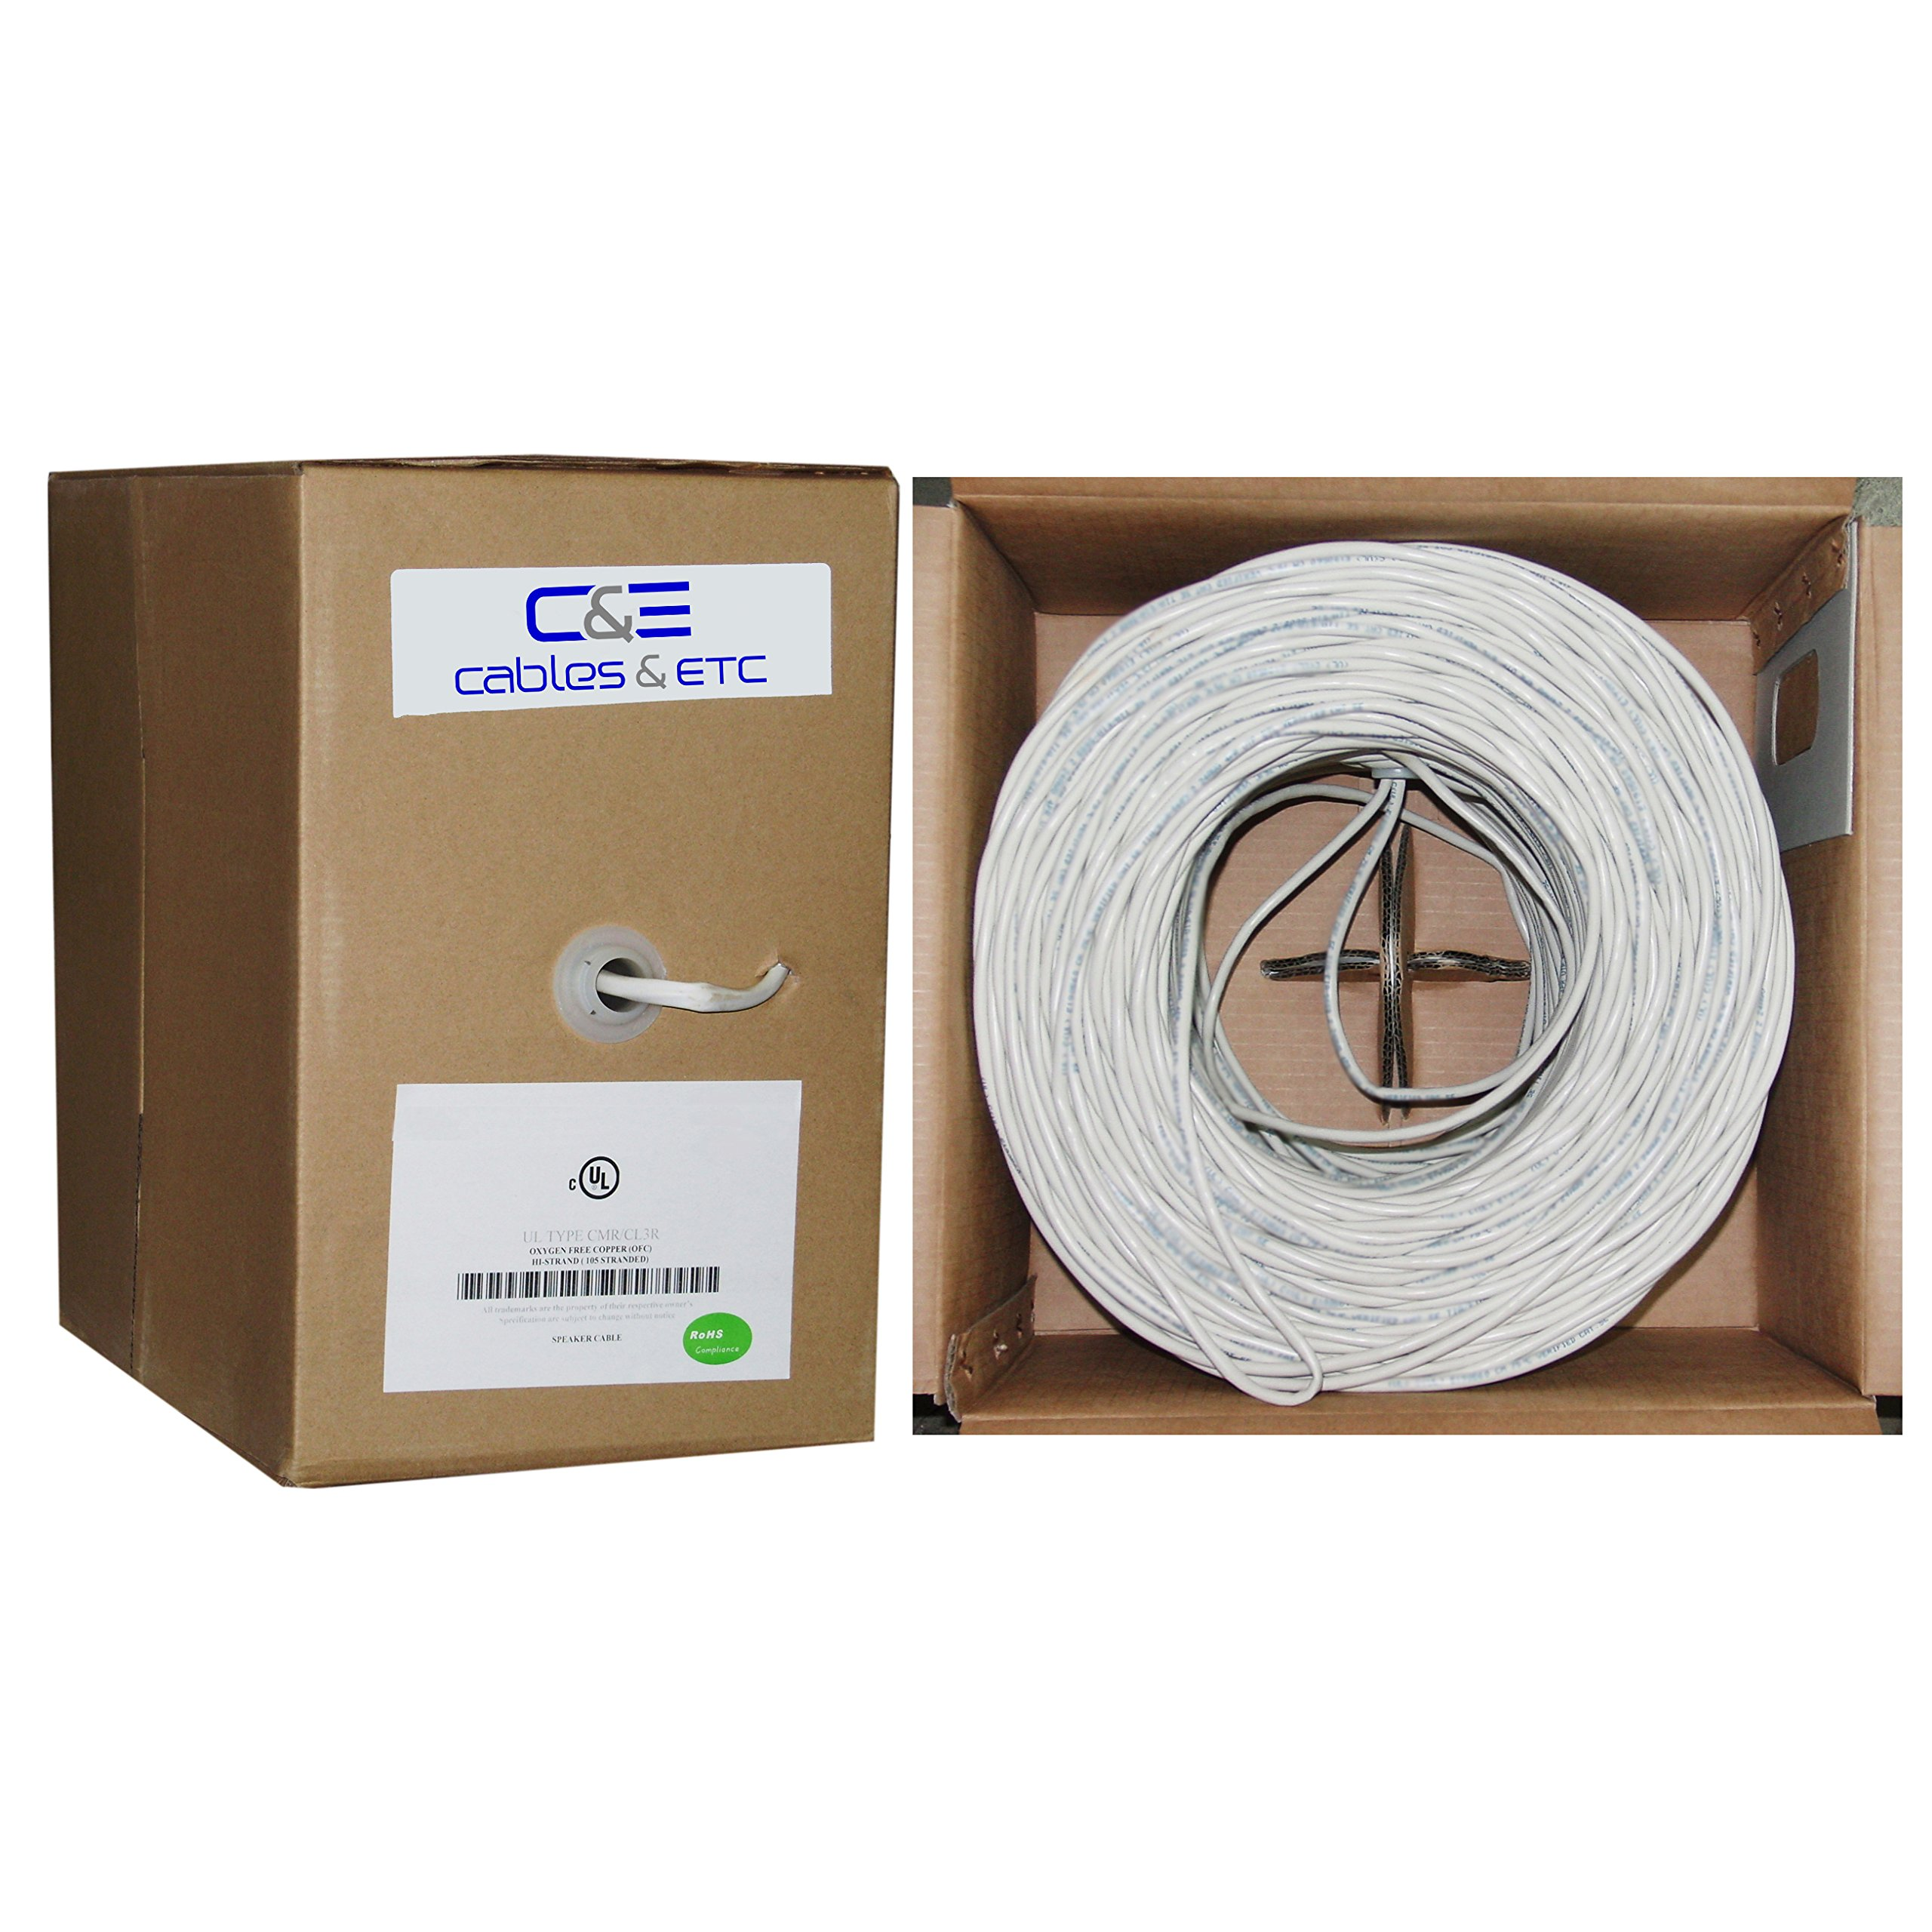 C&E 500 feet 16AWG 4 Conductor Solid Copper, Oxygen-Free Speaker Wire Cable